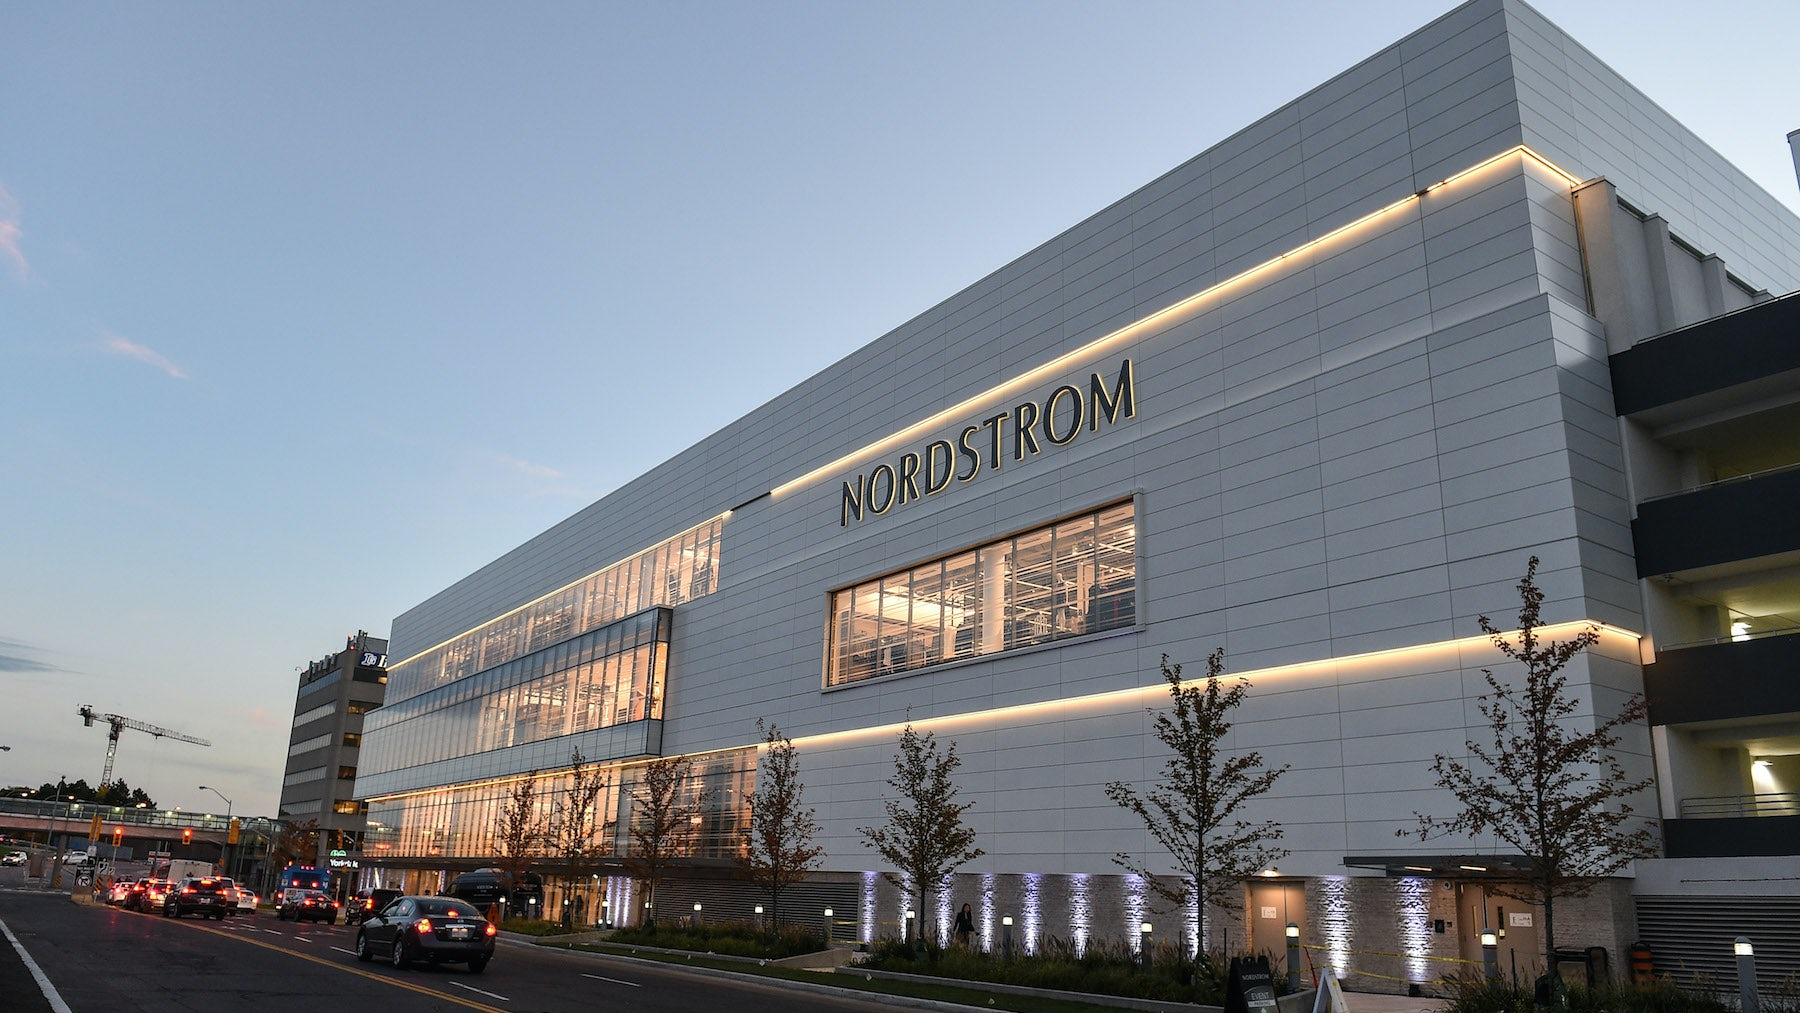 Nordstrom's new store at the Yorkdale Shopping Center, Toronto | Source: Courtesy